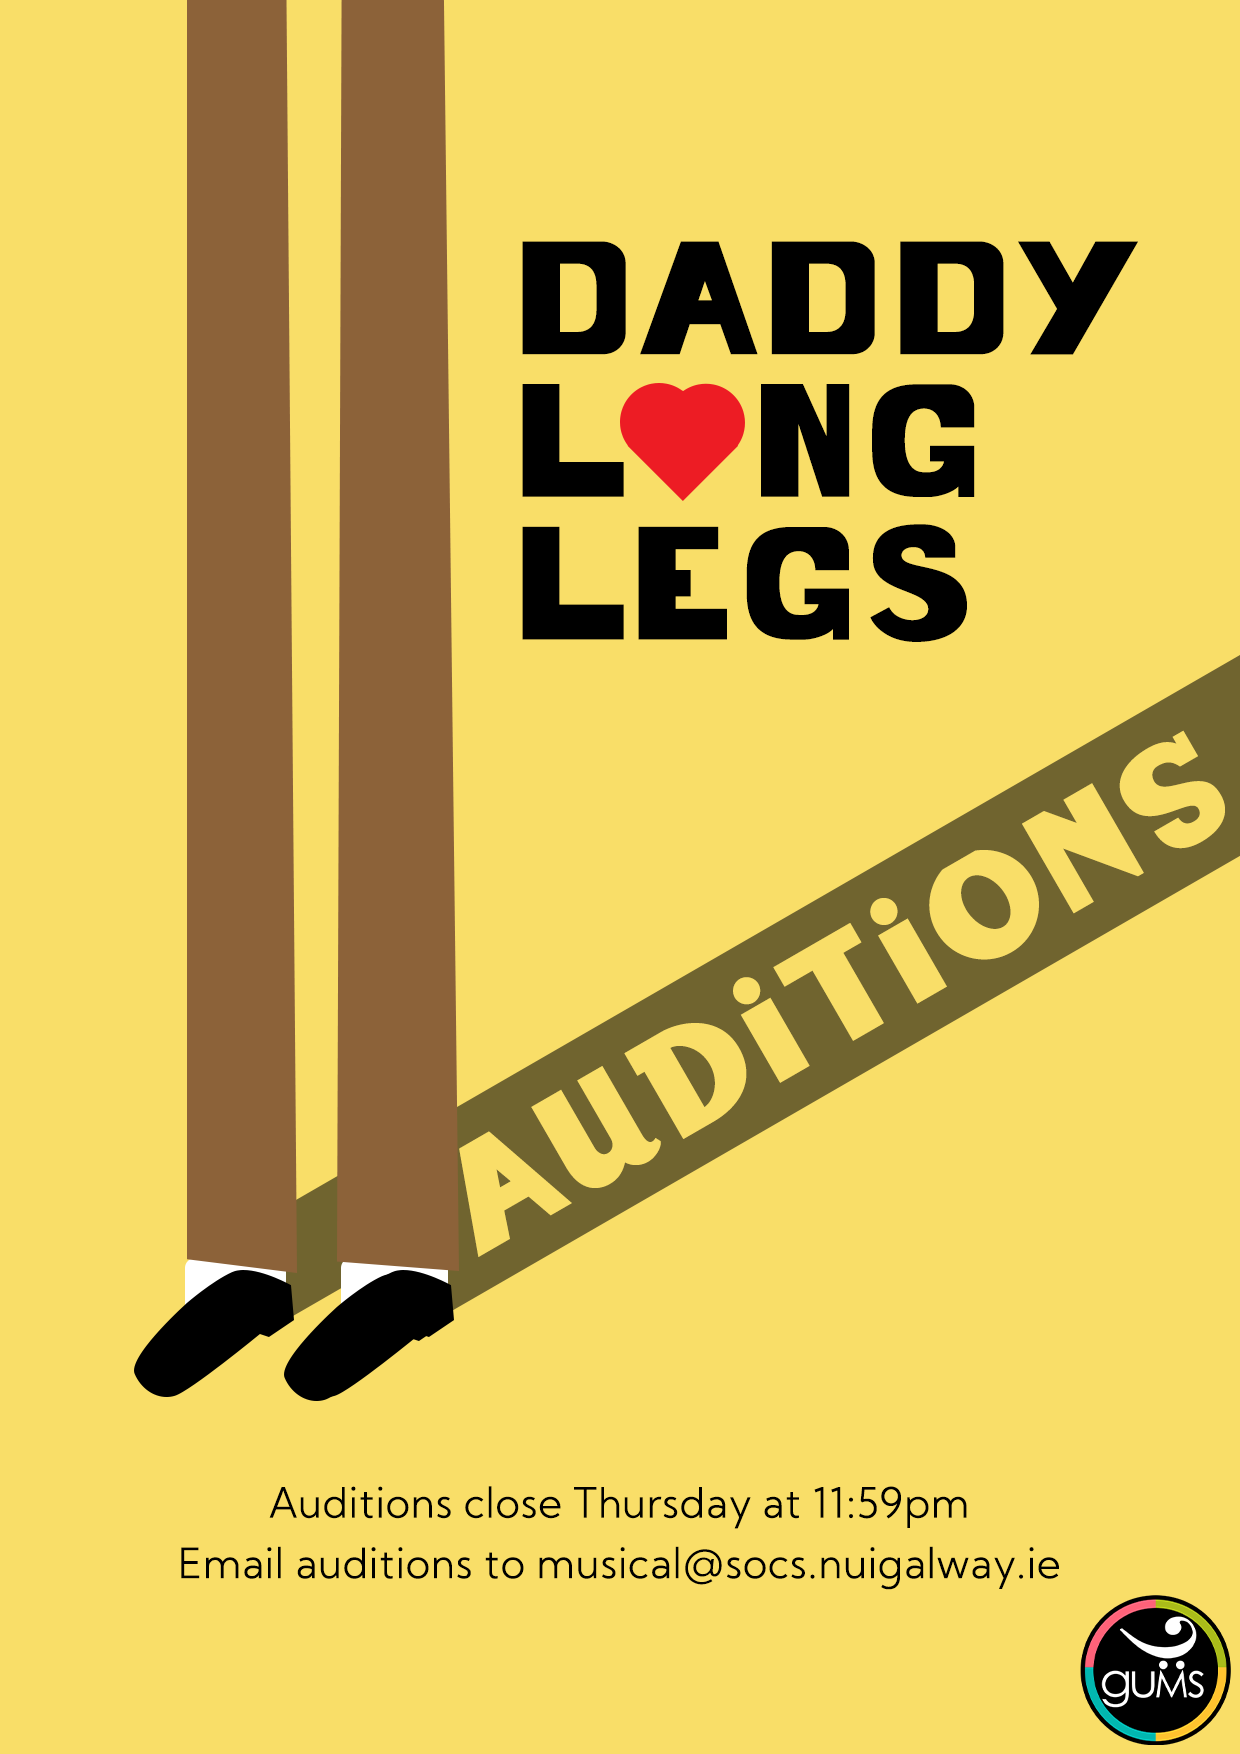 Daddy Long Legs Auditions